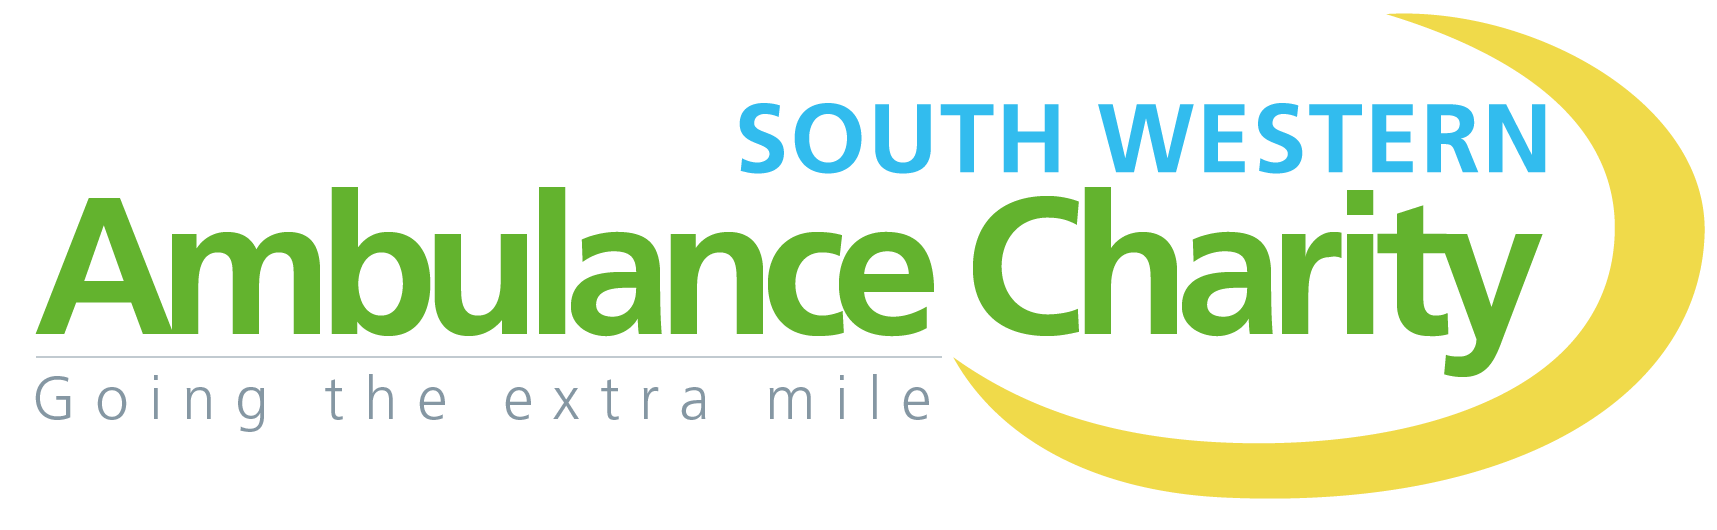 South Western Ambulance Charity logo